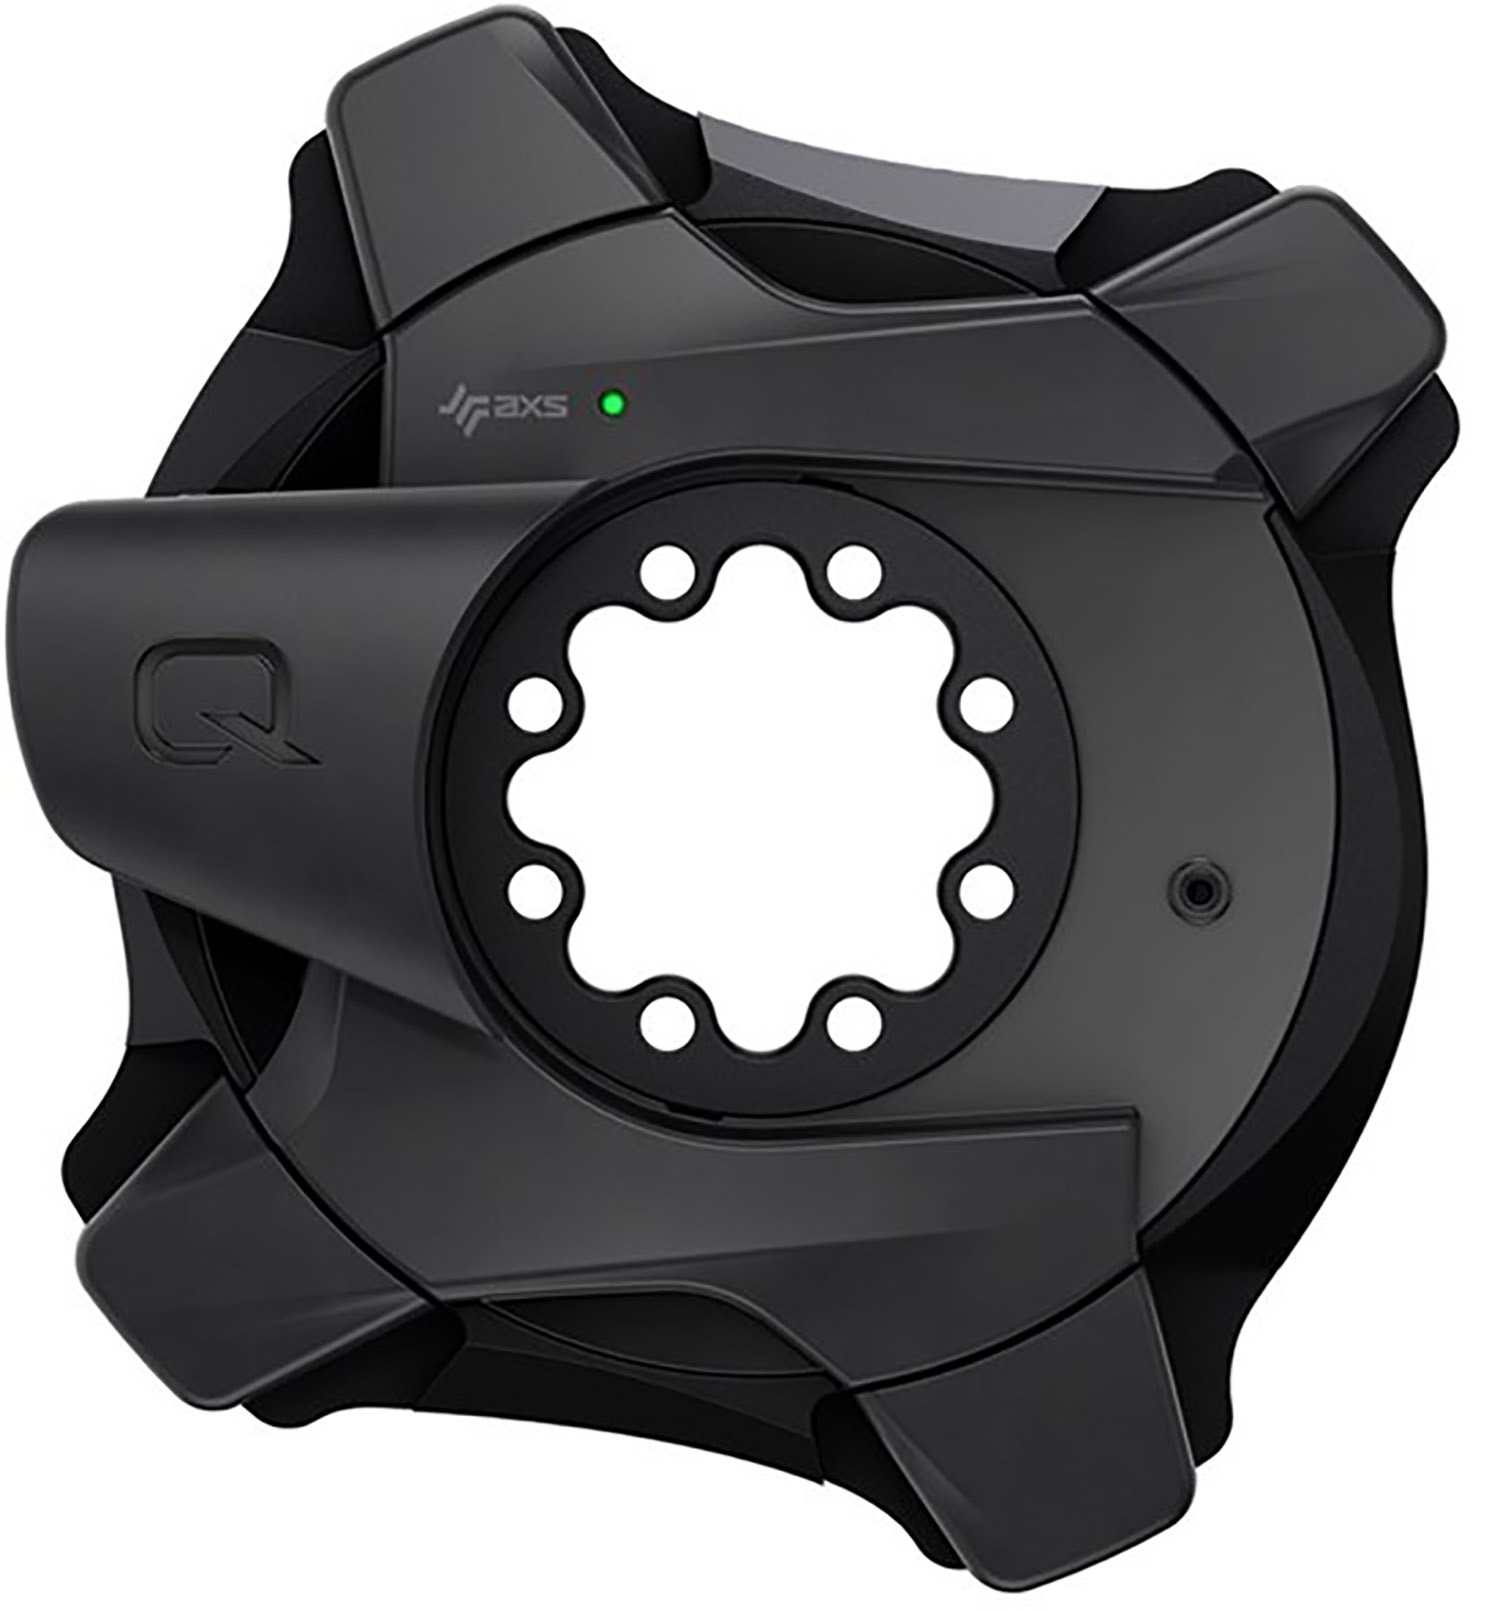 SRAM Power meter spider Road (Red/Force) AXS ANT+, Bluetooth, low energy consumption, +/- 1.5%